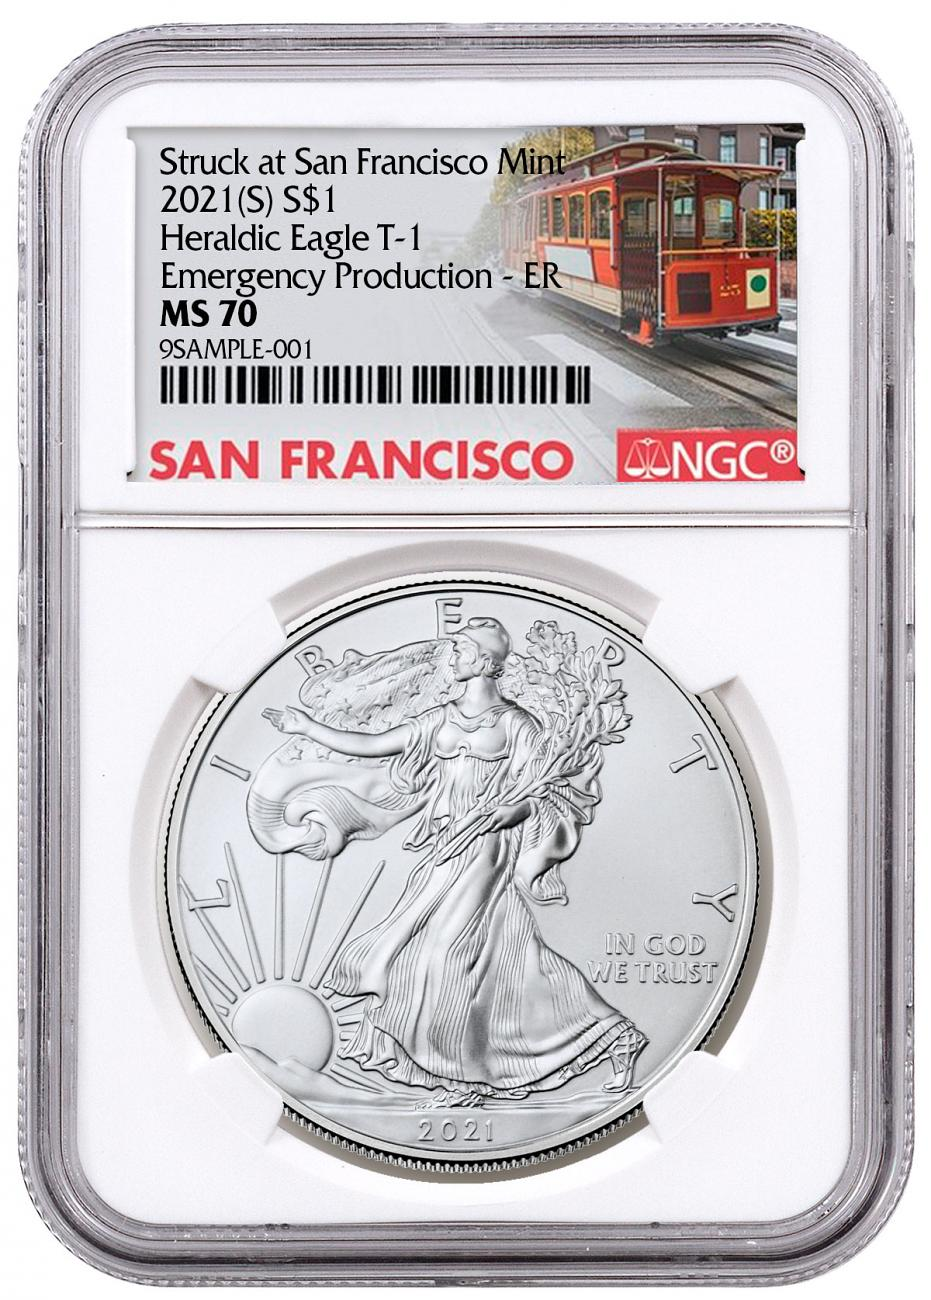 2021-(S) American Silver Eagle Emergency Production Struck at San Francisco Mint Type 1 NGC MS70 ER Trolley Label